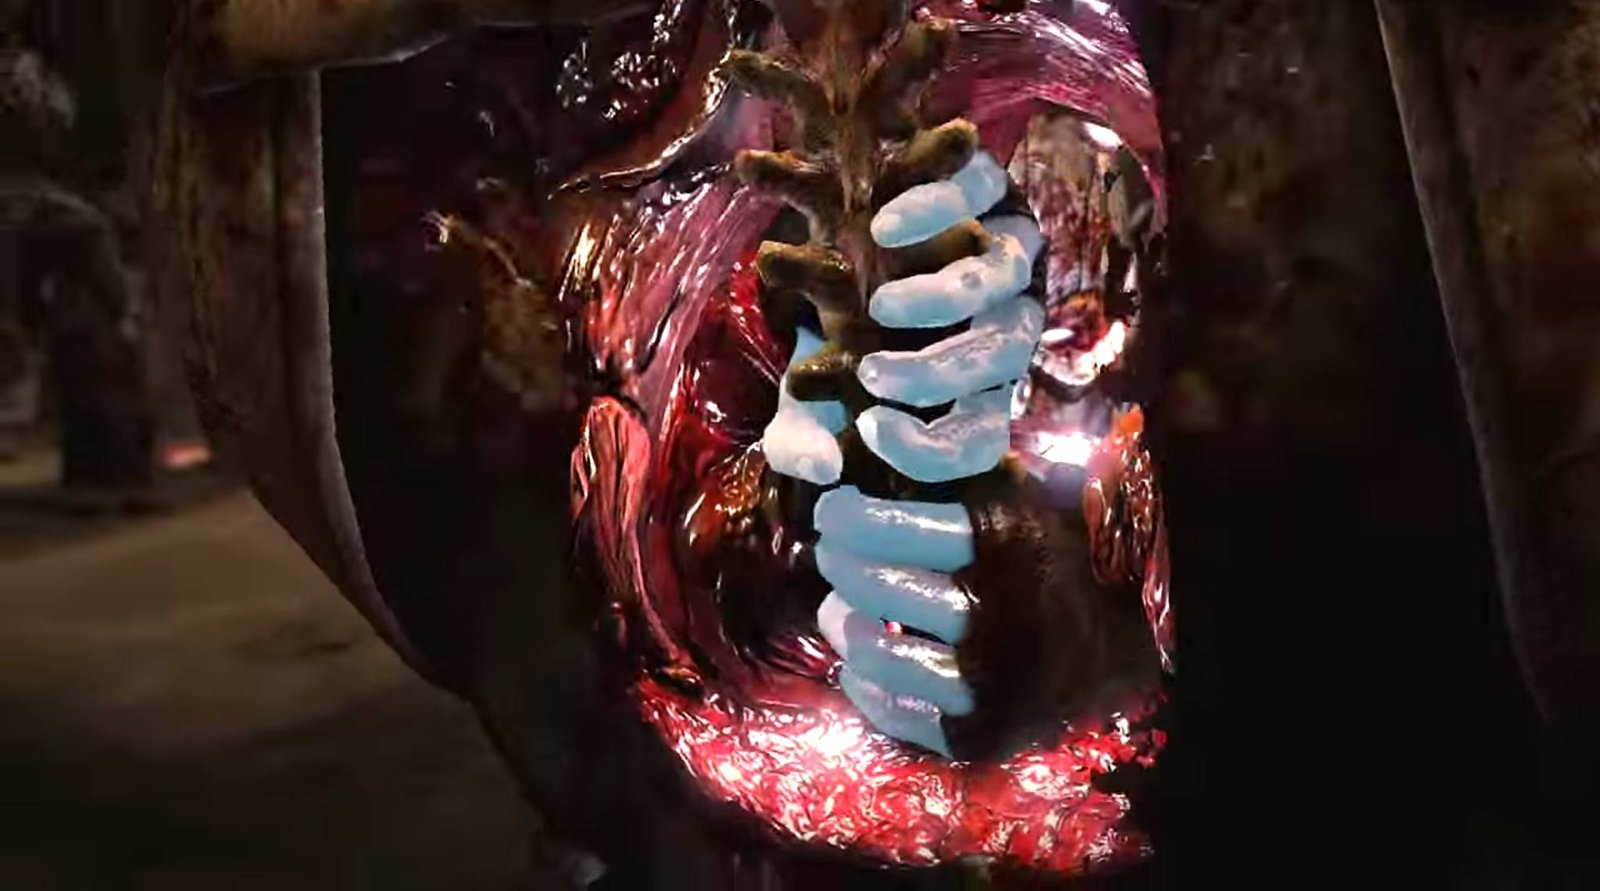 I did the chest cavity sculpt (not spine)